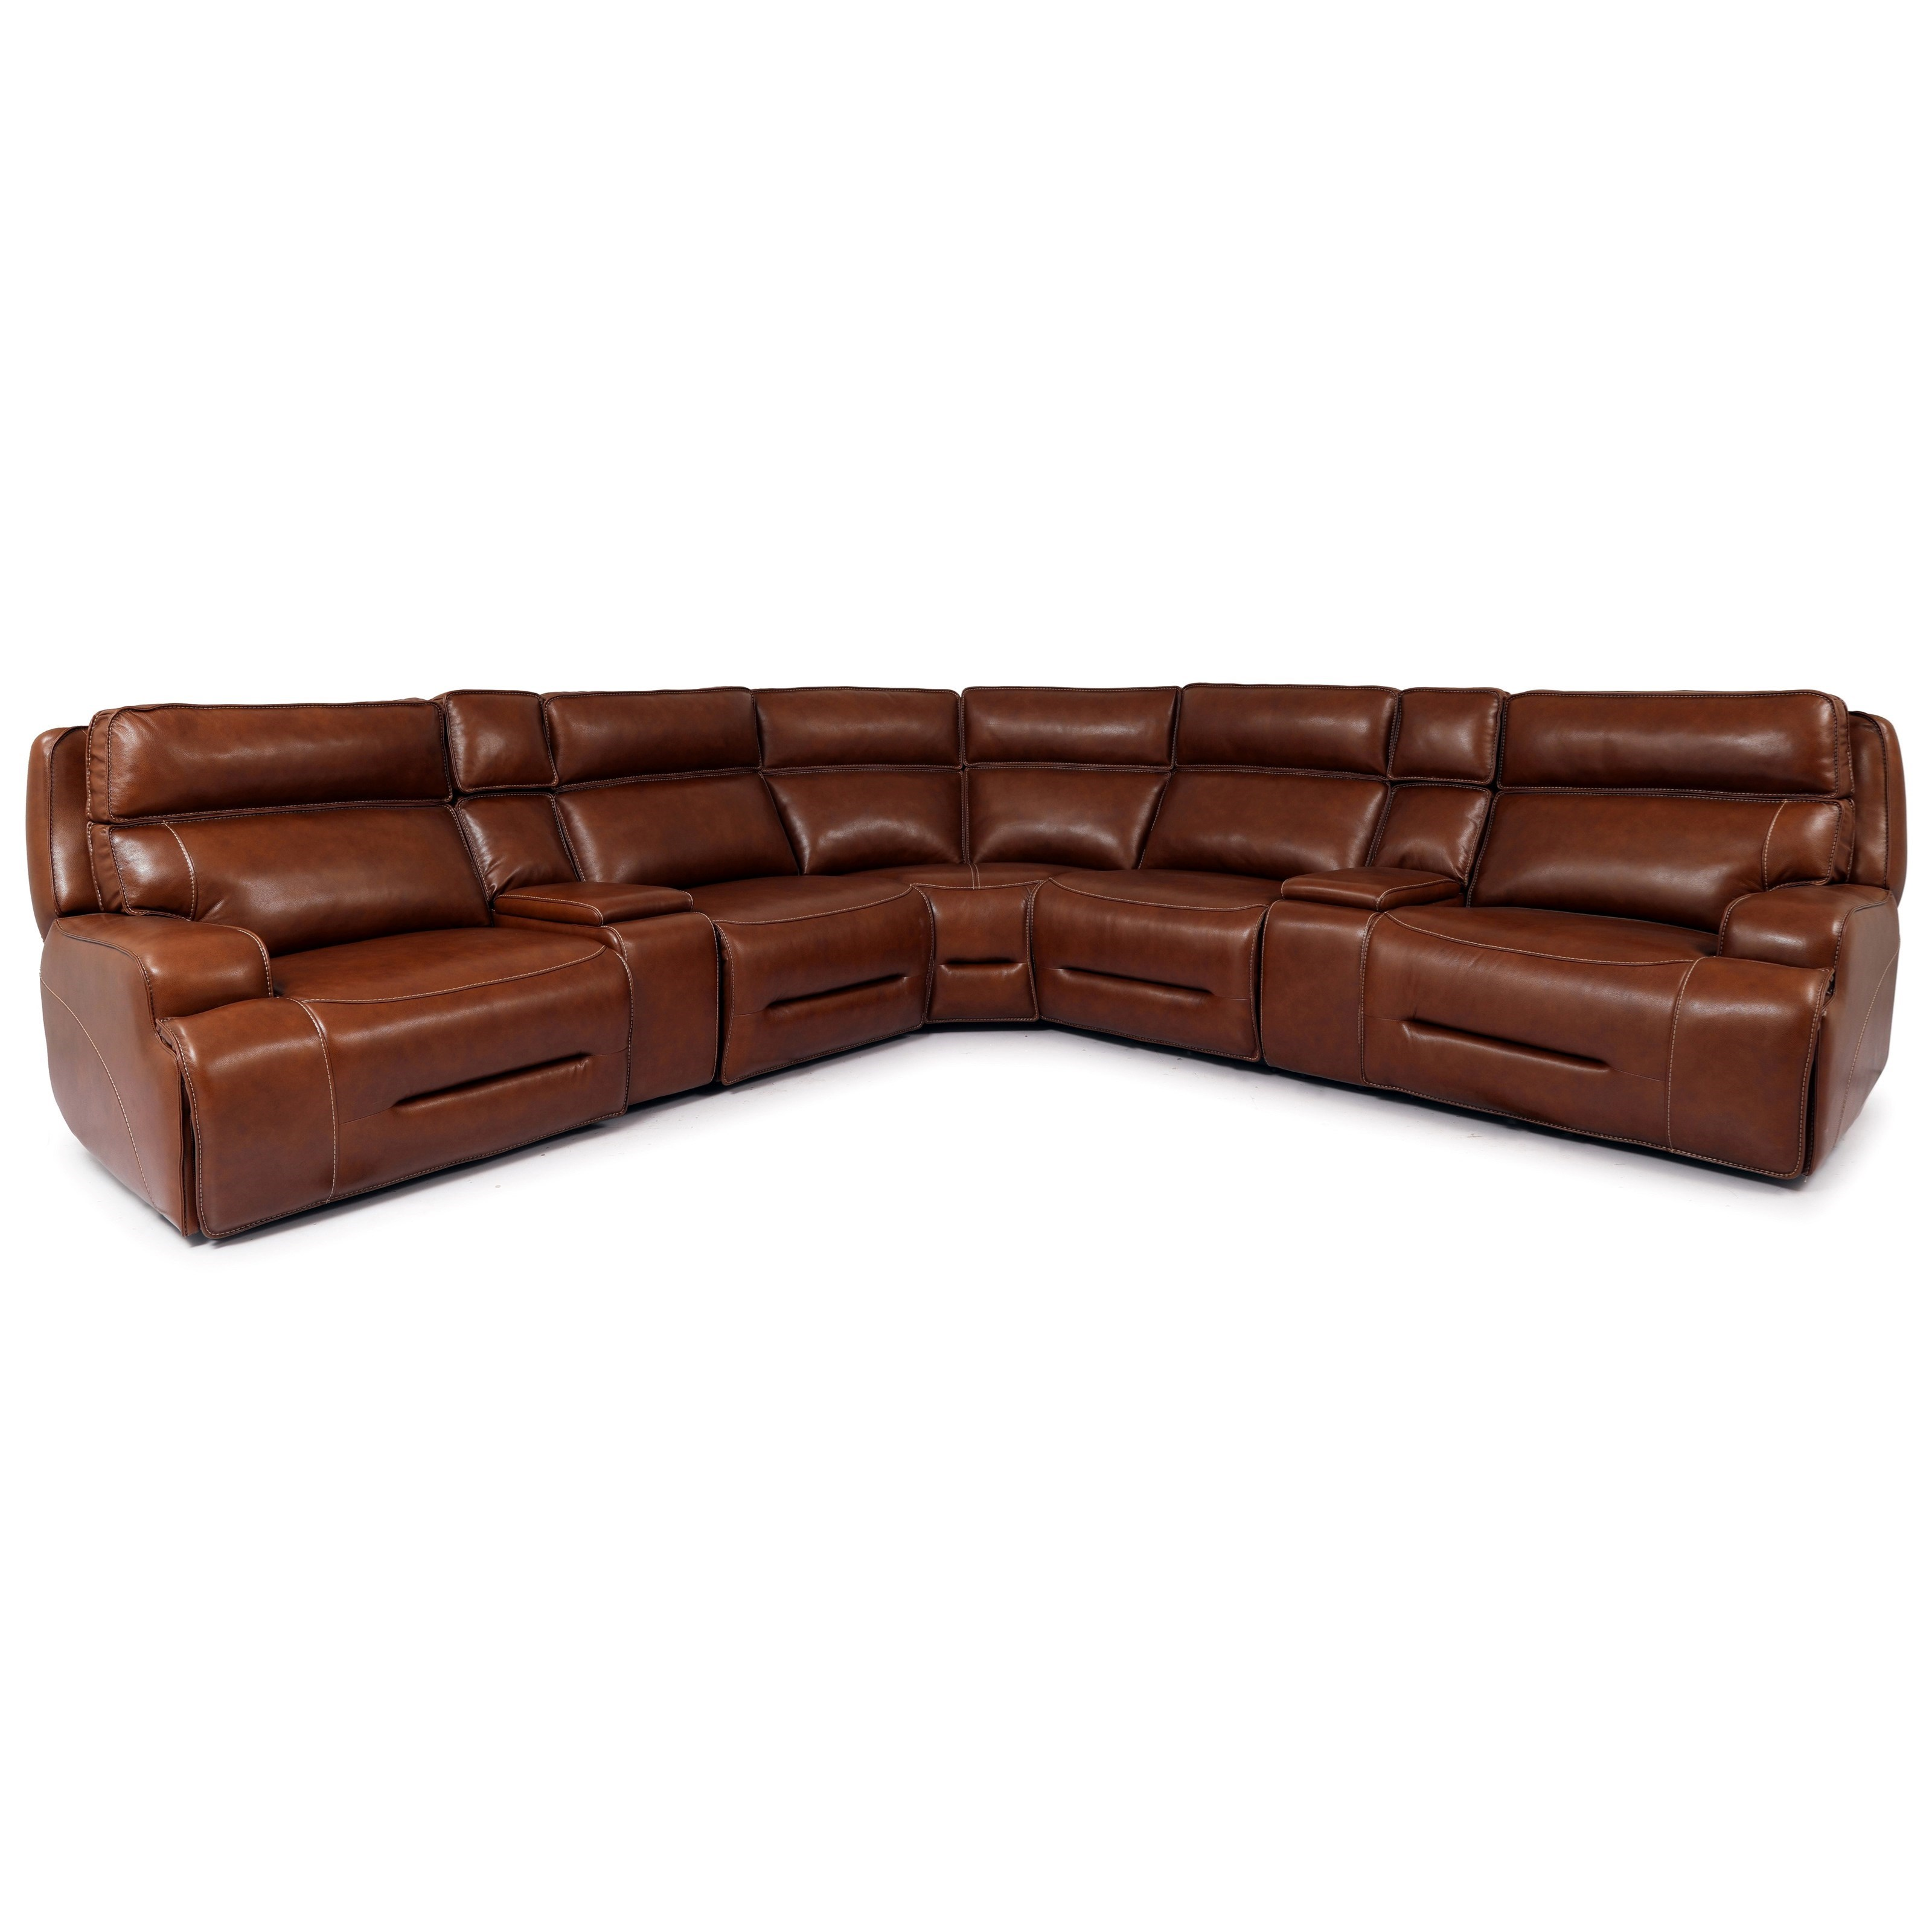 UC90029 Reclining Sectional by MW Home at Baer's Furniture